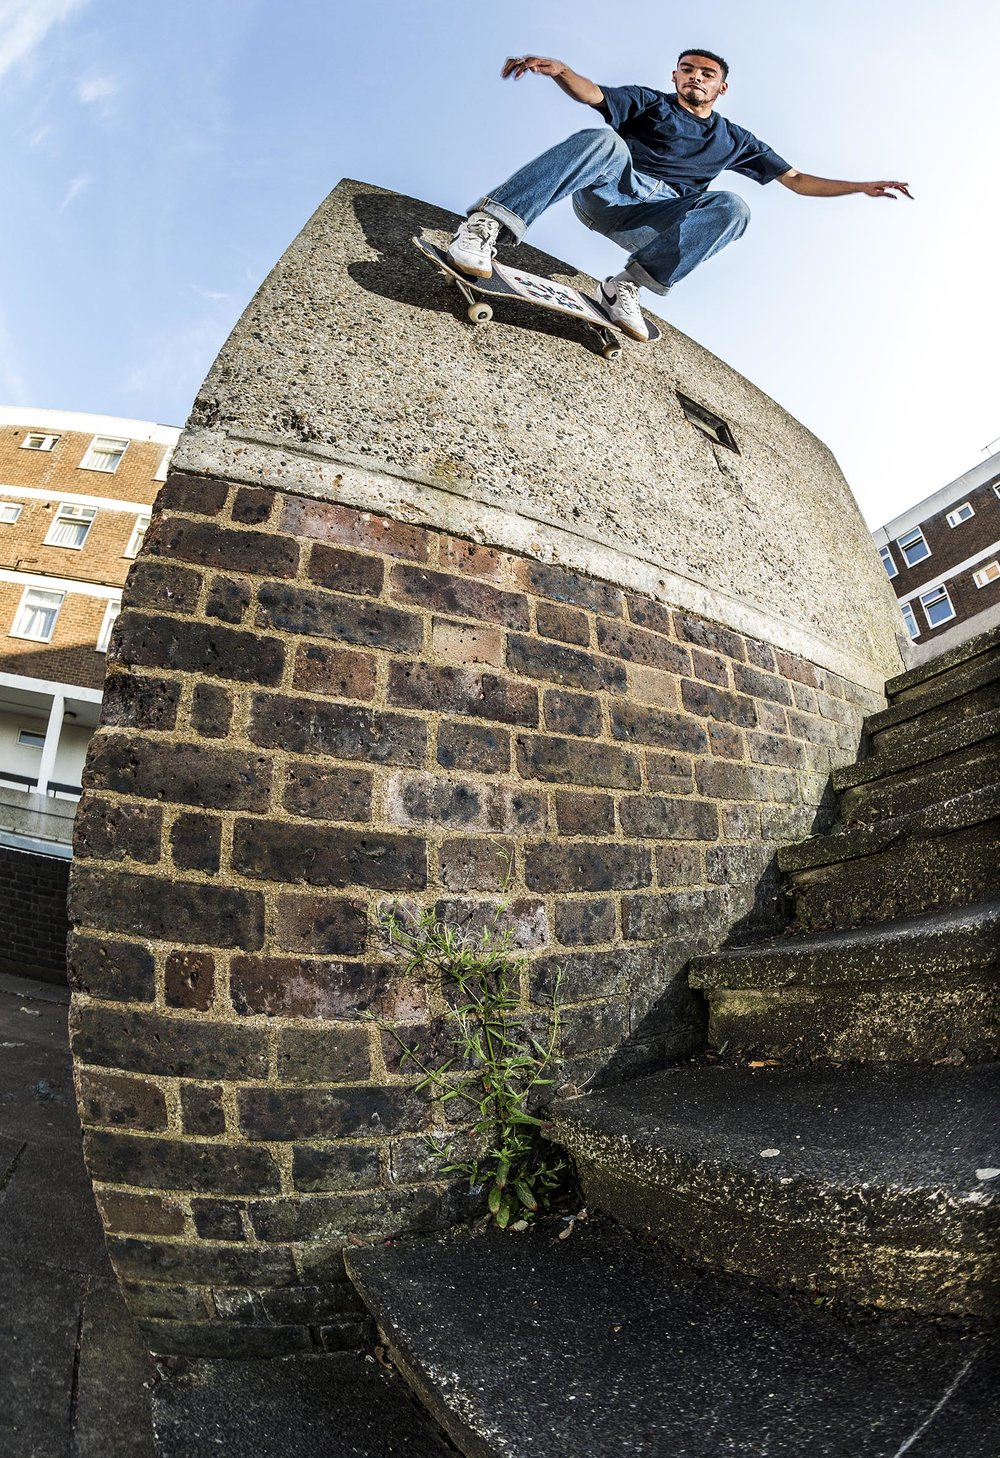 Kyron Davis - ollie over the gap to wallride